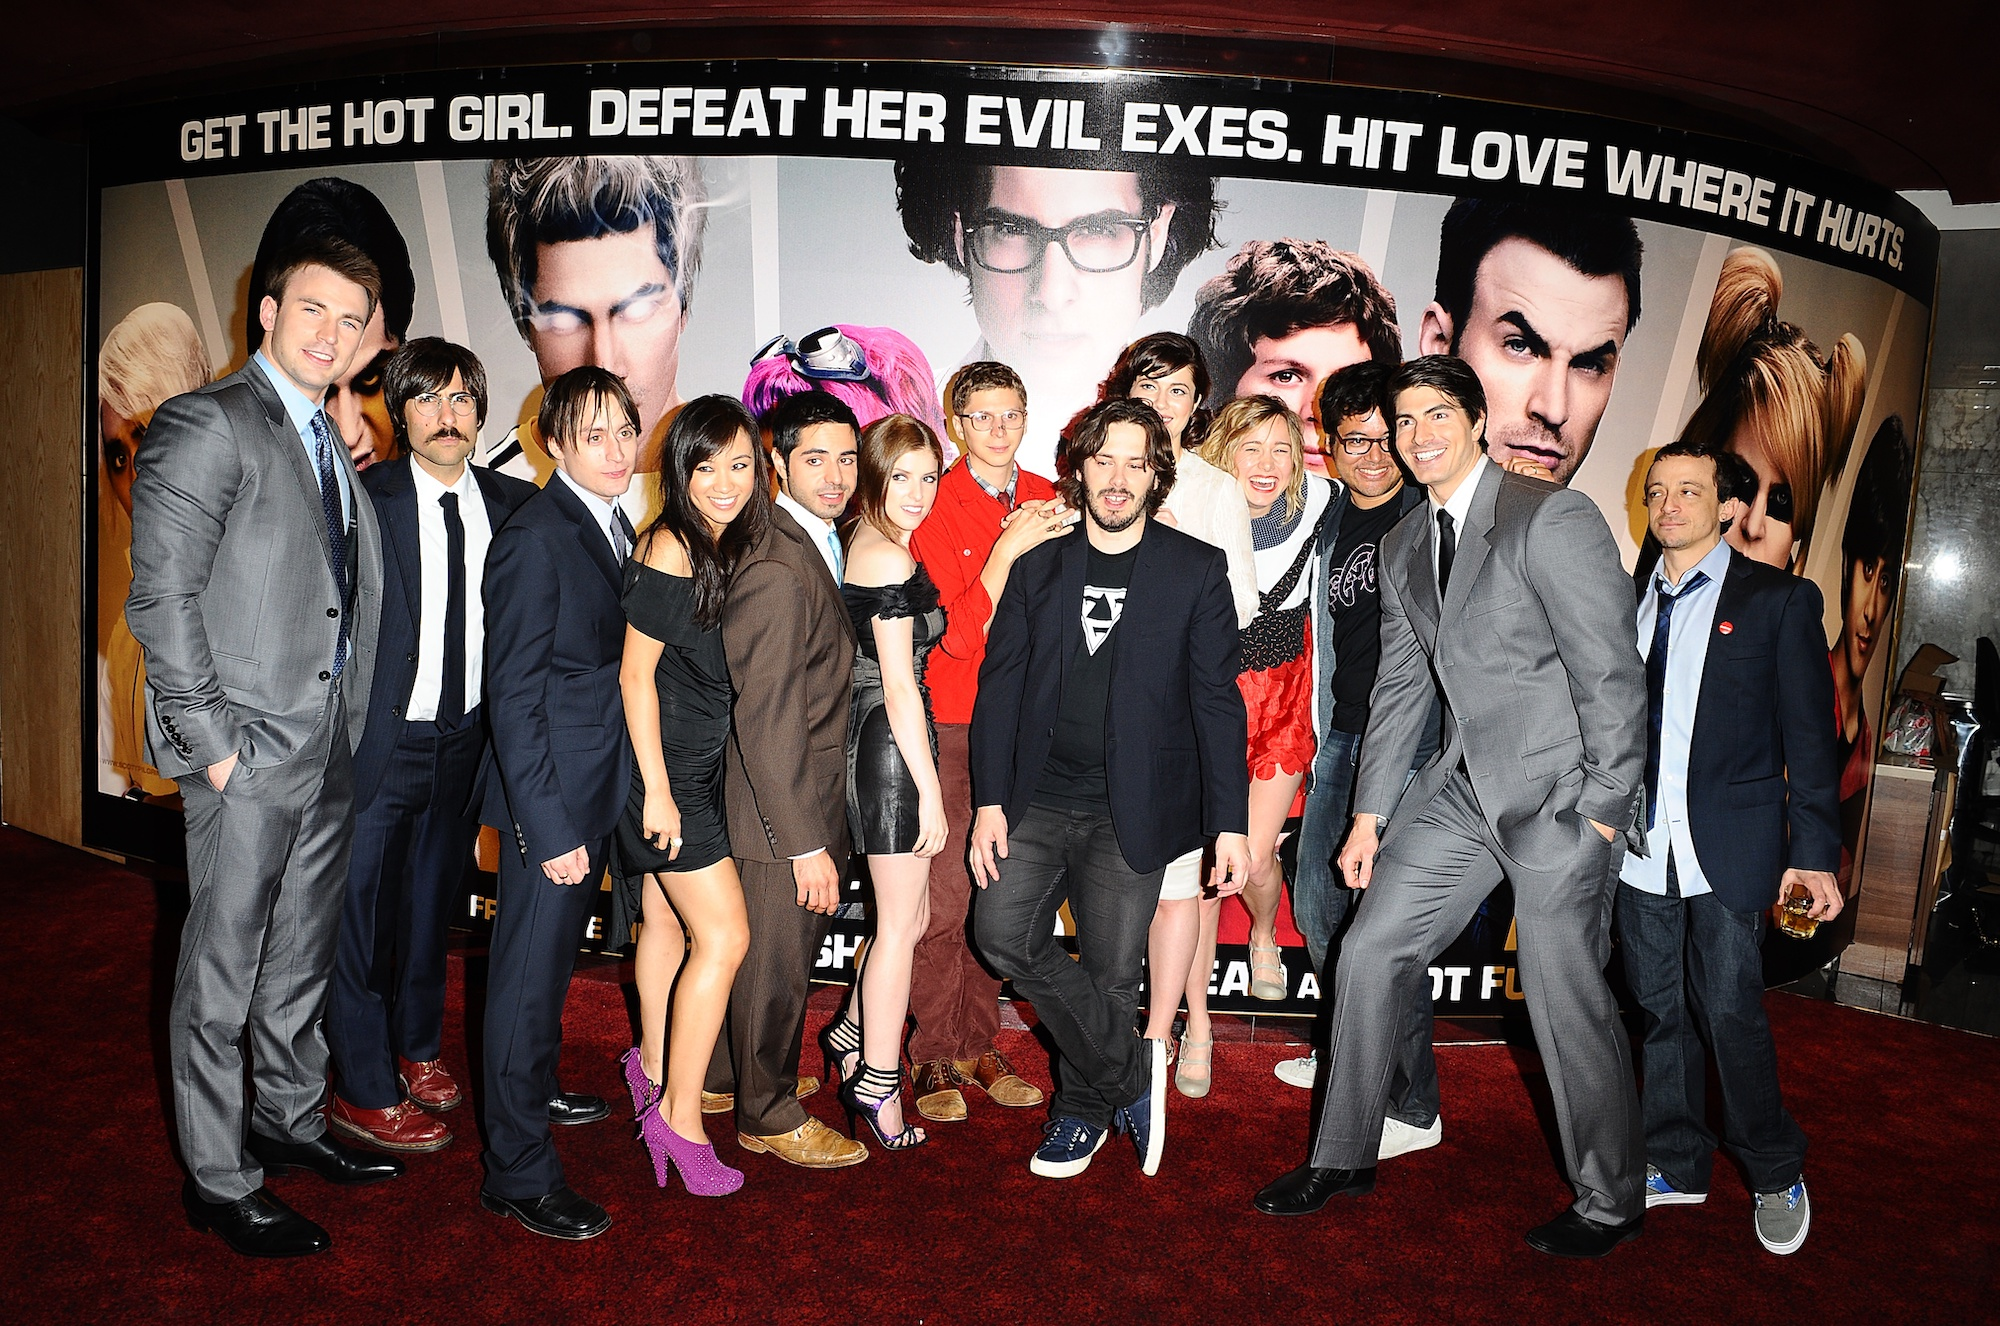 Cast and crew members of 'Scott Pilgrim vs The World' at the premiere for the film at the Odeon, Leicester Square, London.